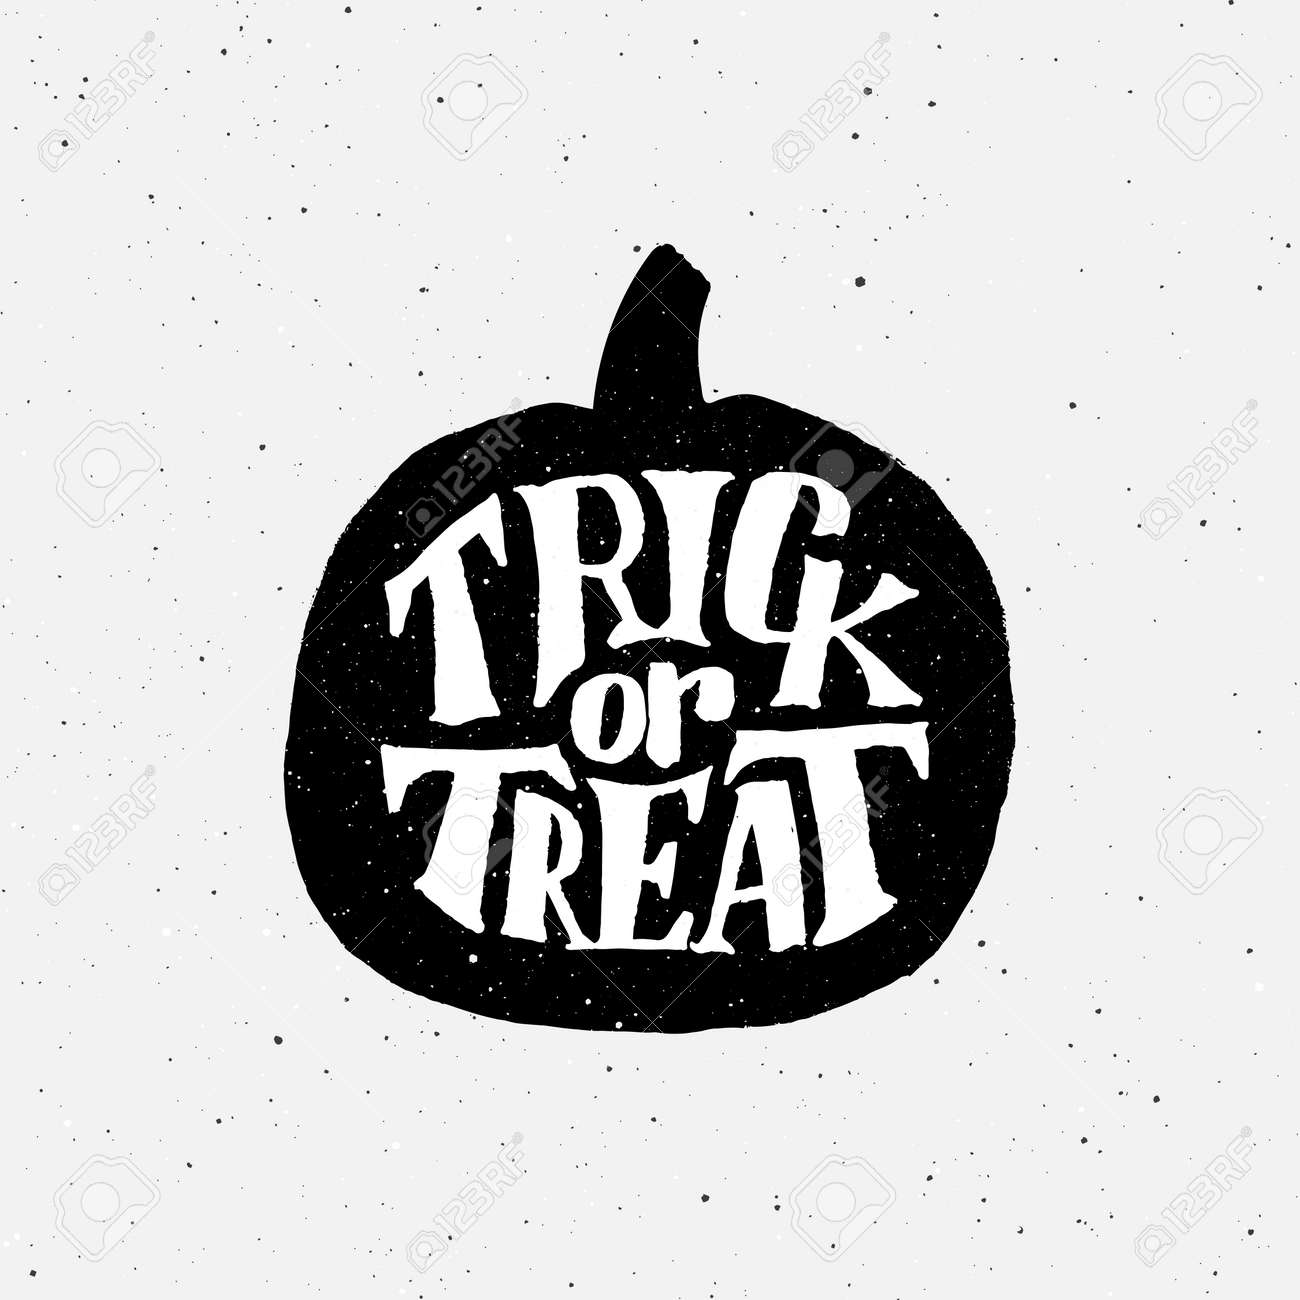 Halloween Trick Or Treat Silhouette.Vintage Poster For Halloween Party With Typography On Pumpkin